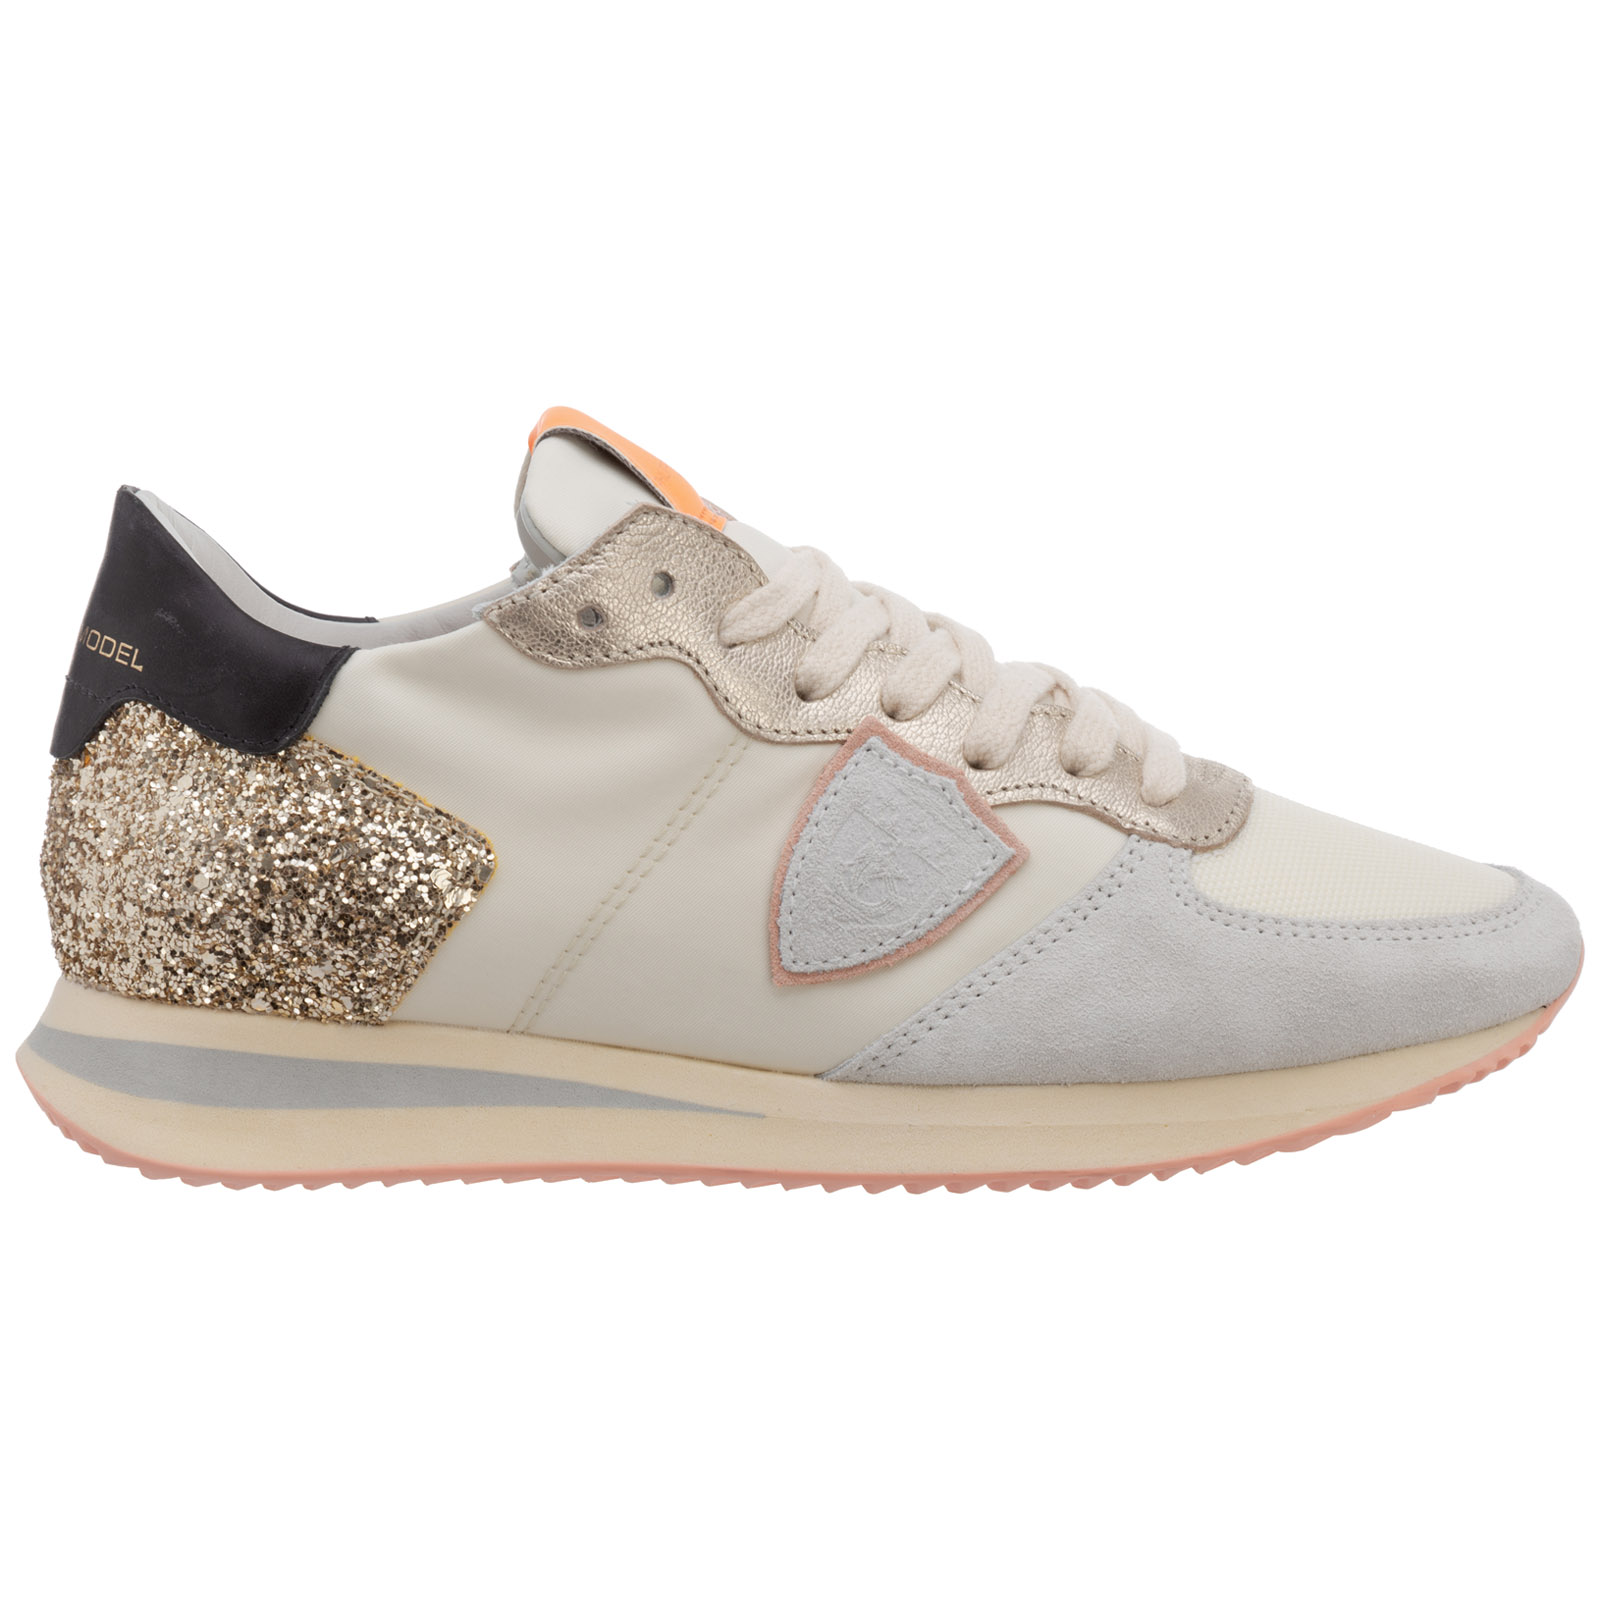 Philippe Model WOMEN'S SHOES LEATHER TRAINERS SNEAKERS TRPX